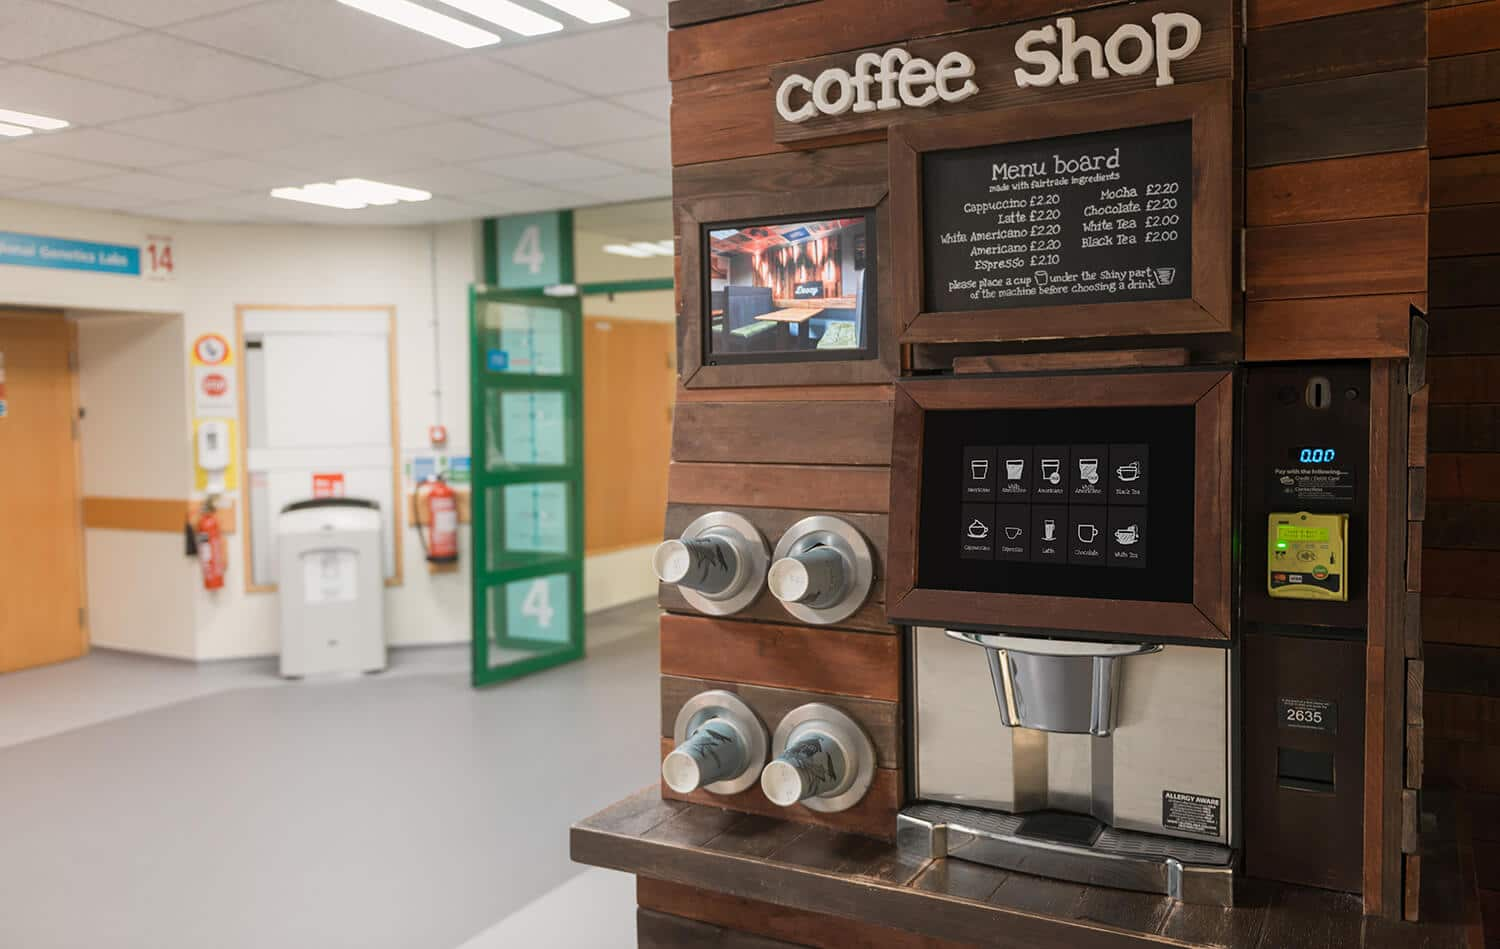 Detailed Analysis On The Coffee Machine Lease